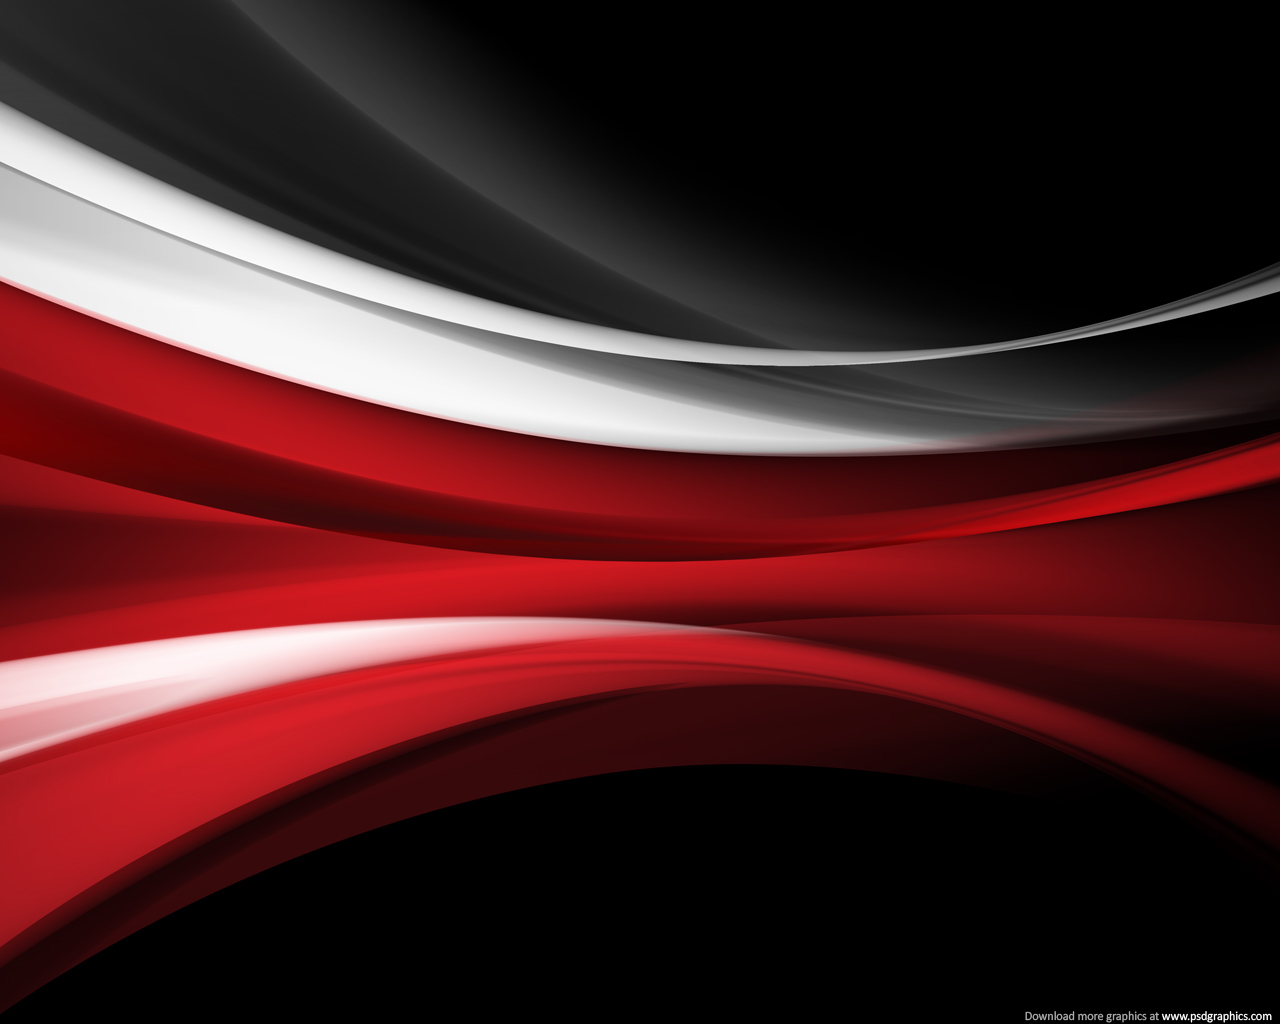 color theme red black white keywords flowing red light trails black 1280x1024